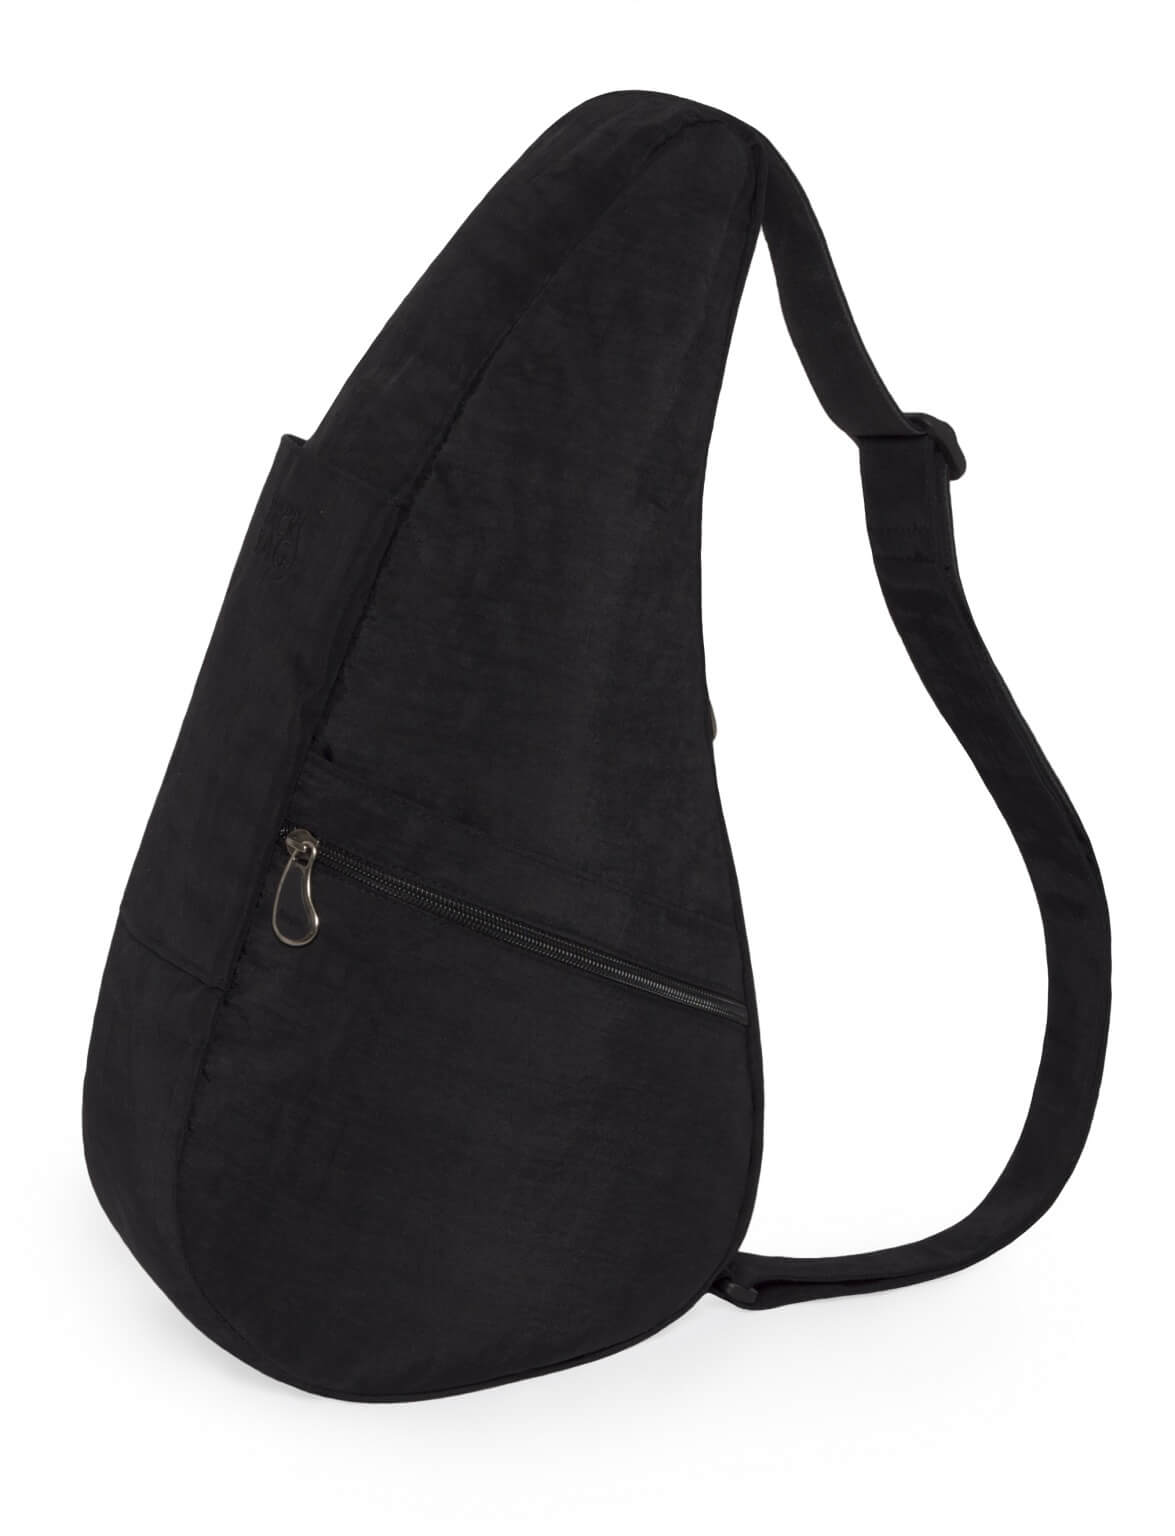 Healthy Back Bag Classic Textured Small 6103 Black-3393